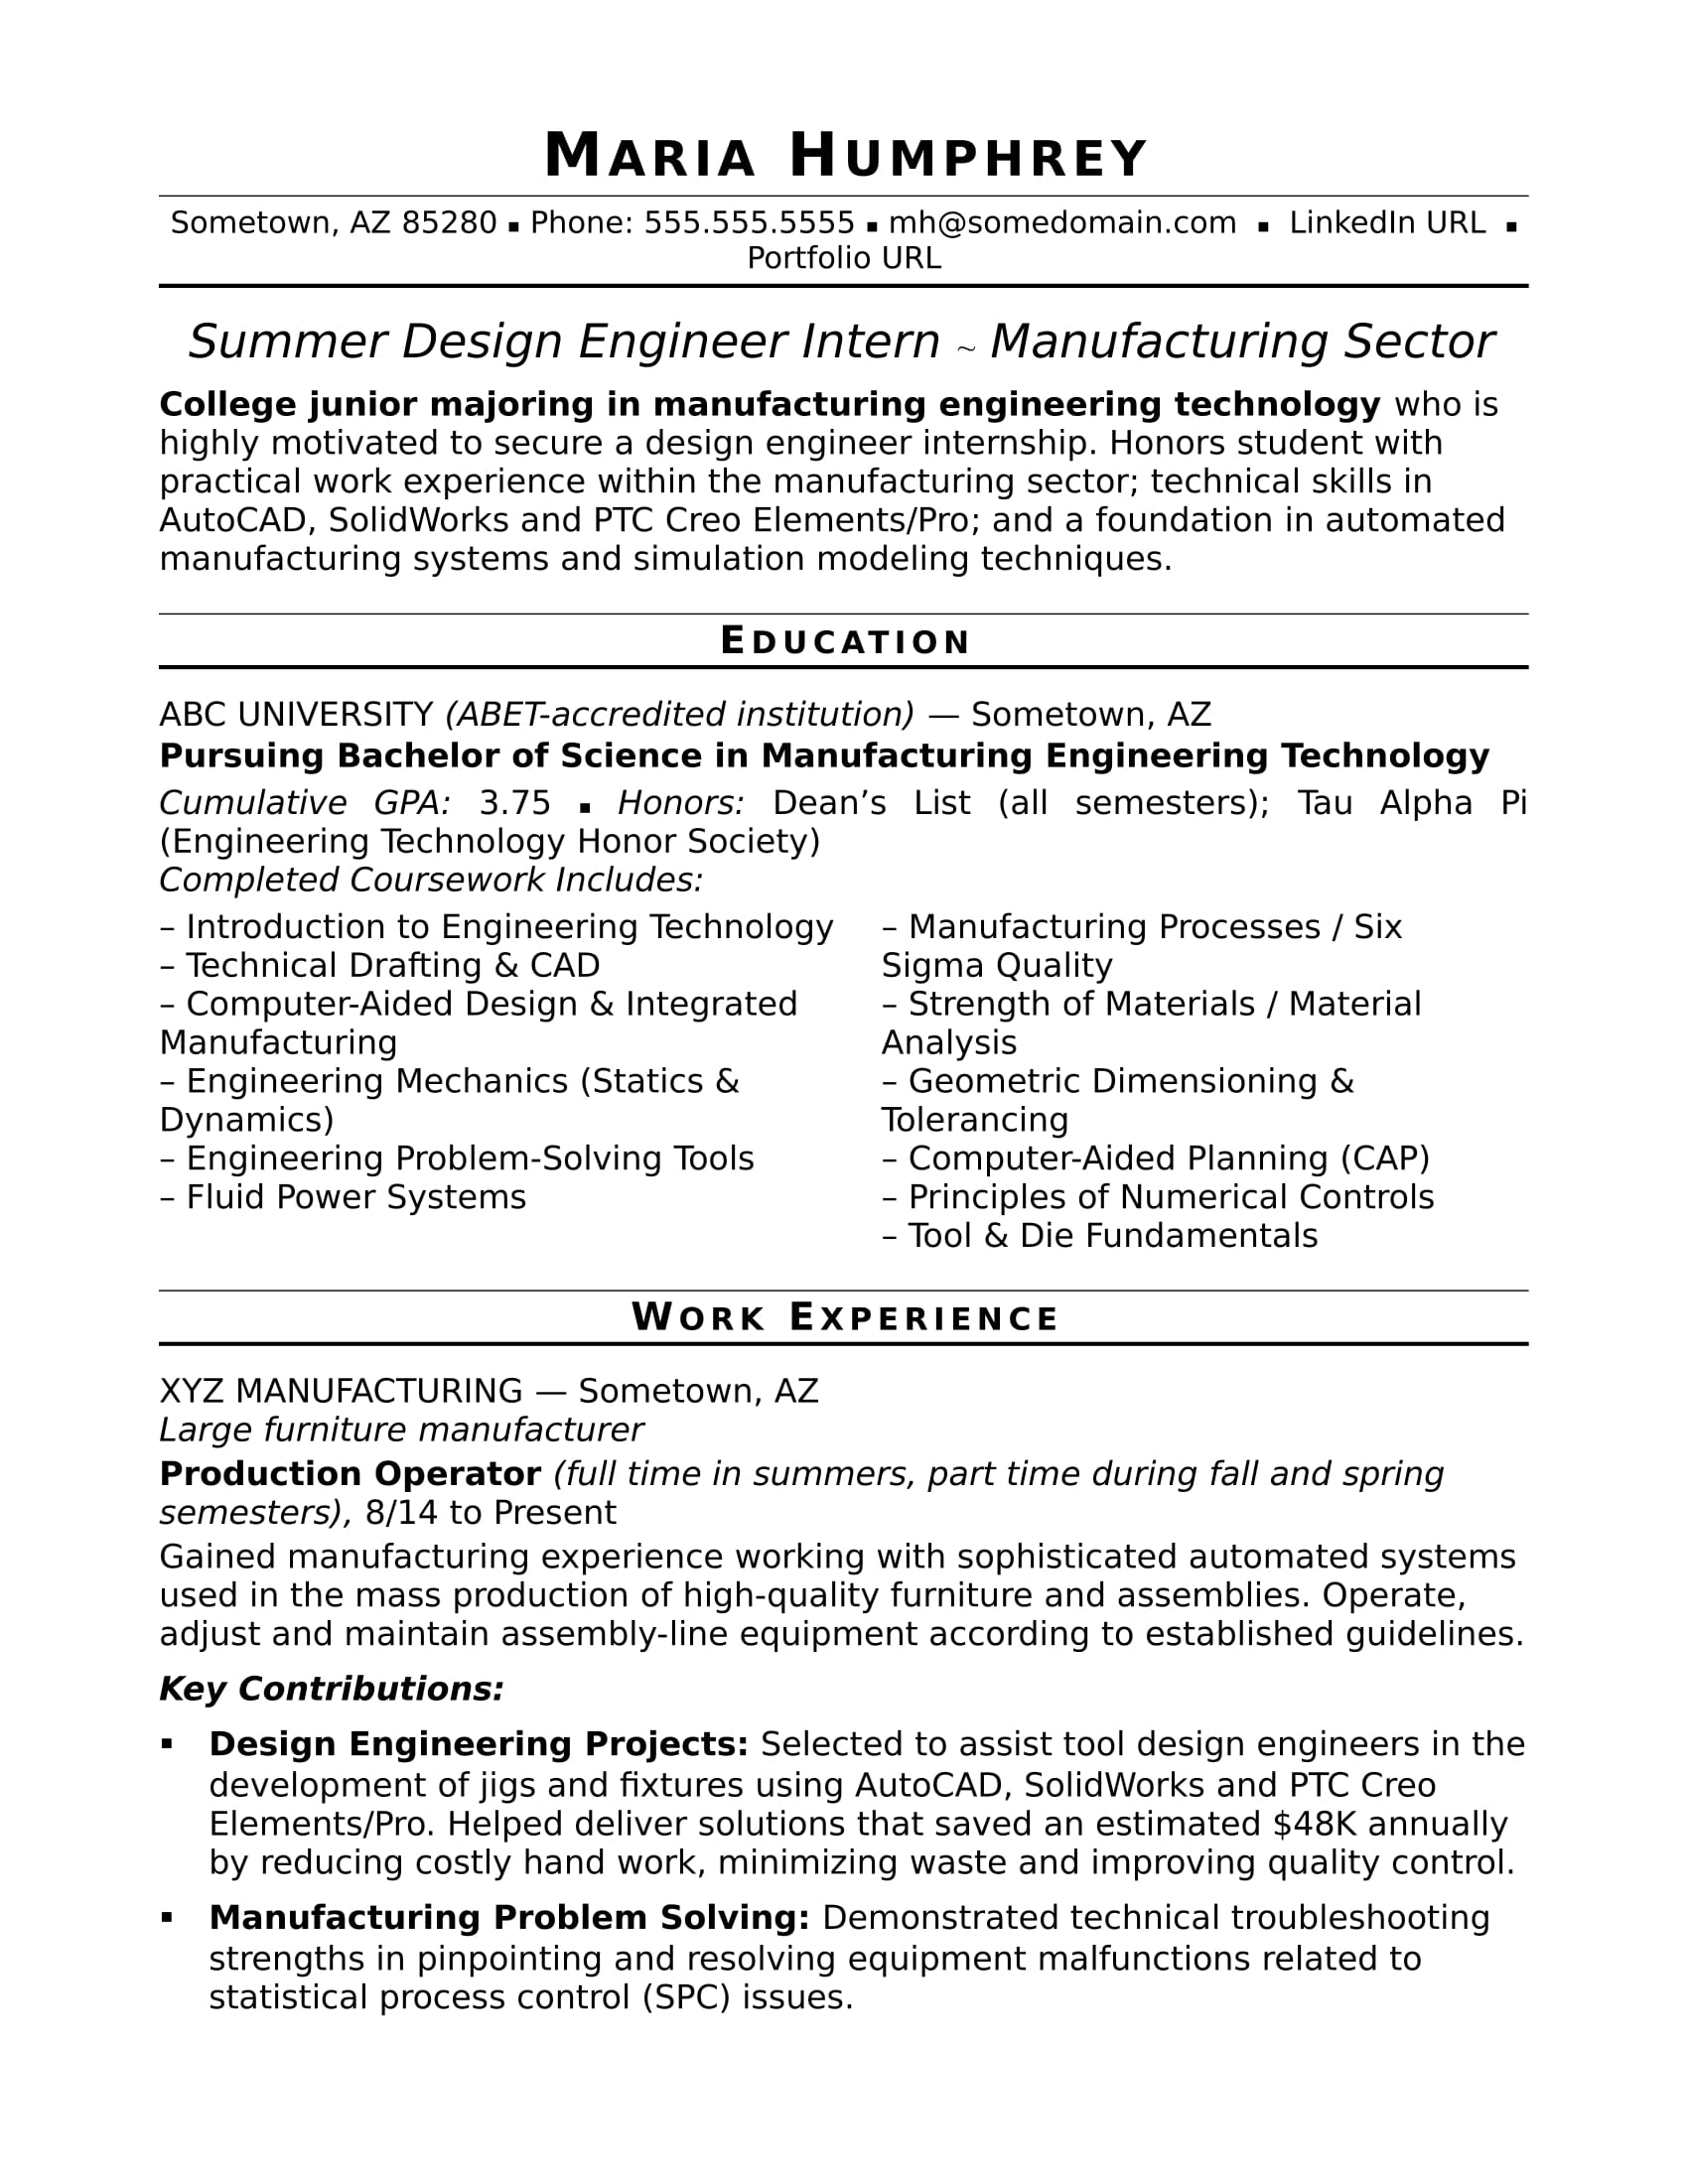 Sample Resume For An Entry Level Design Engineer  List Of Technical Skills For Resume